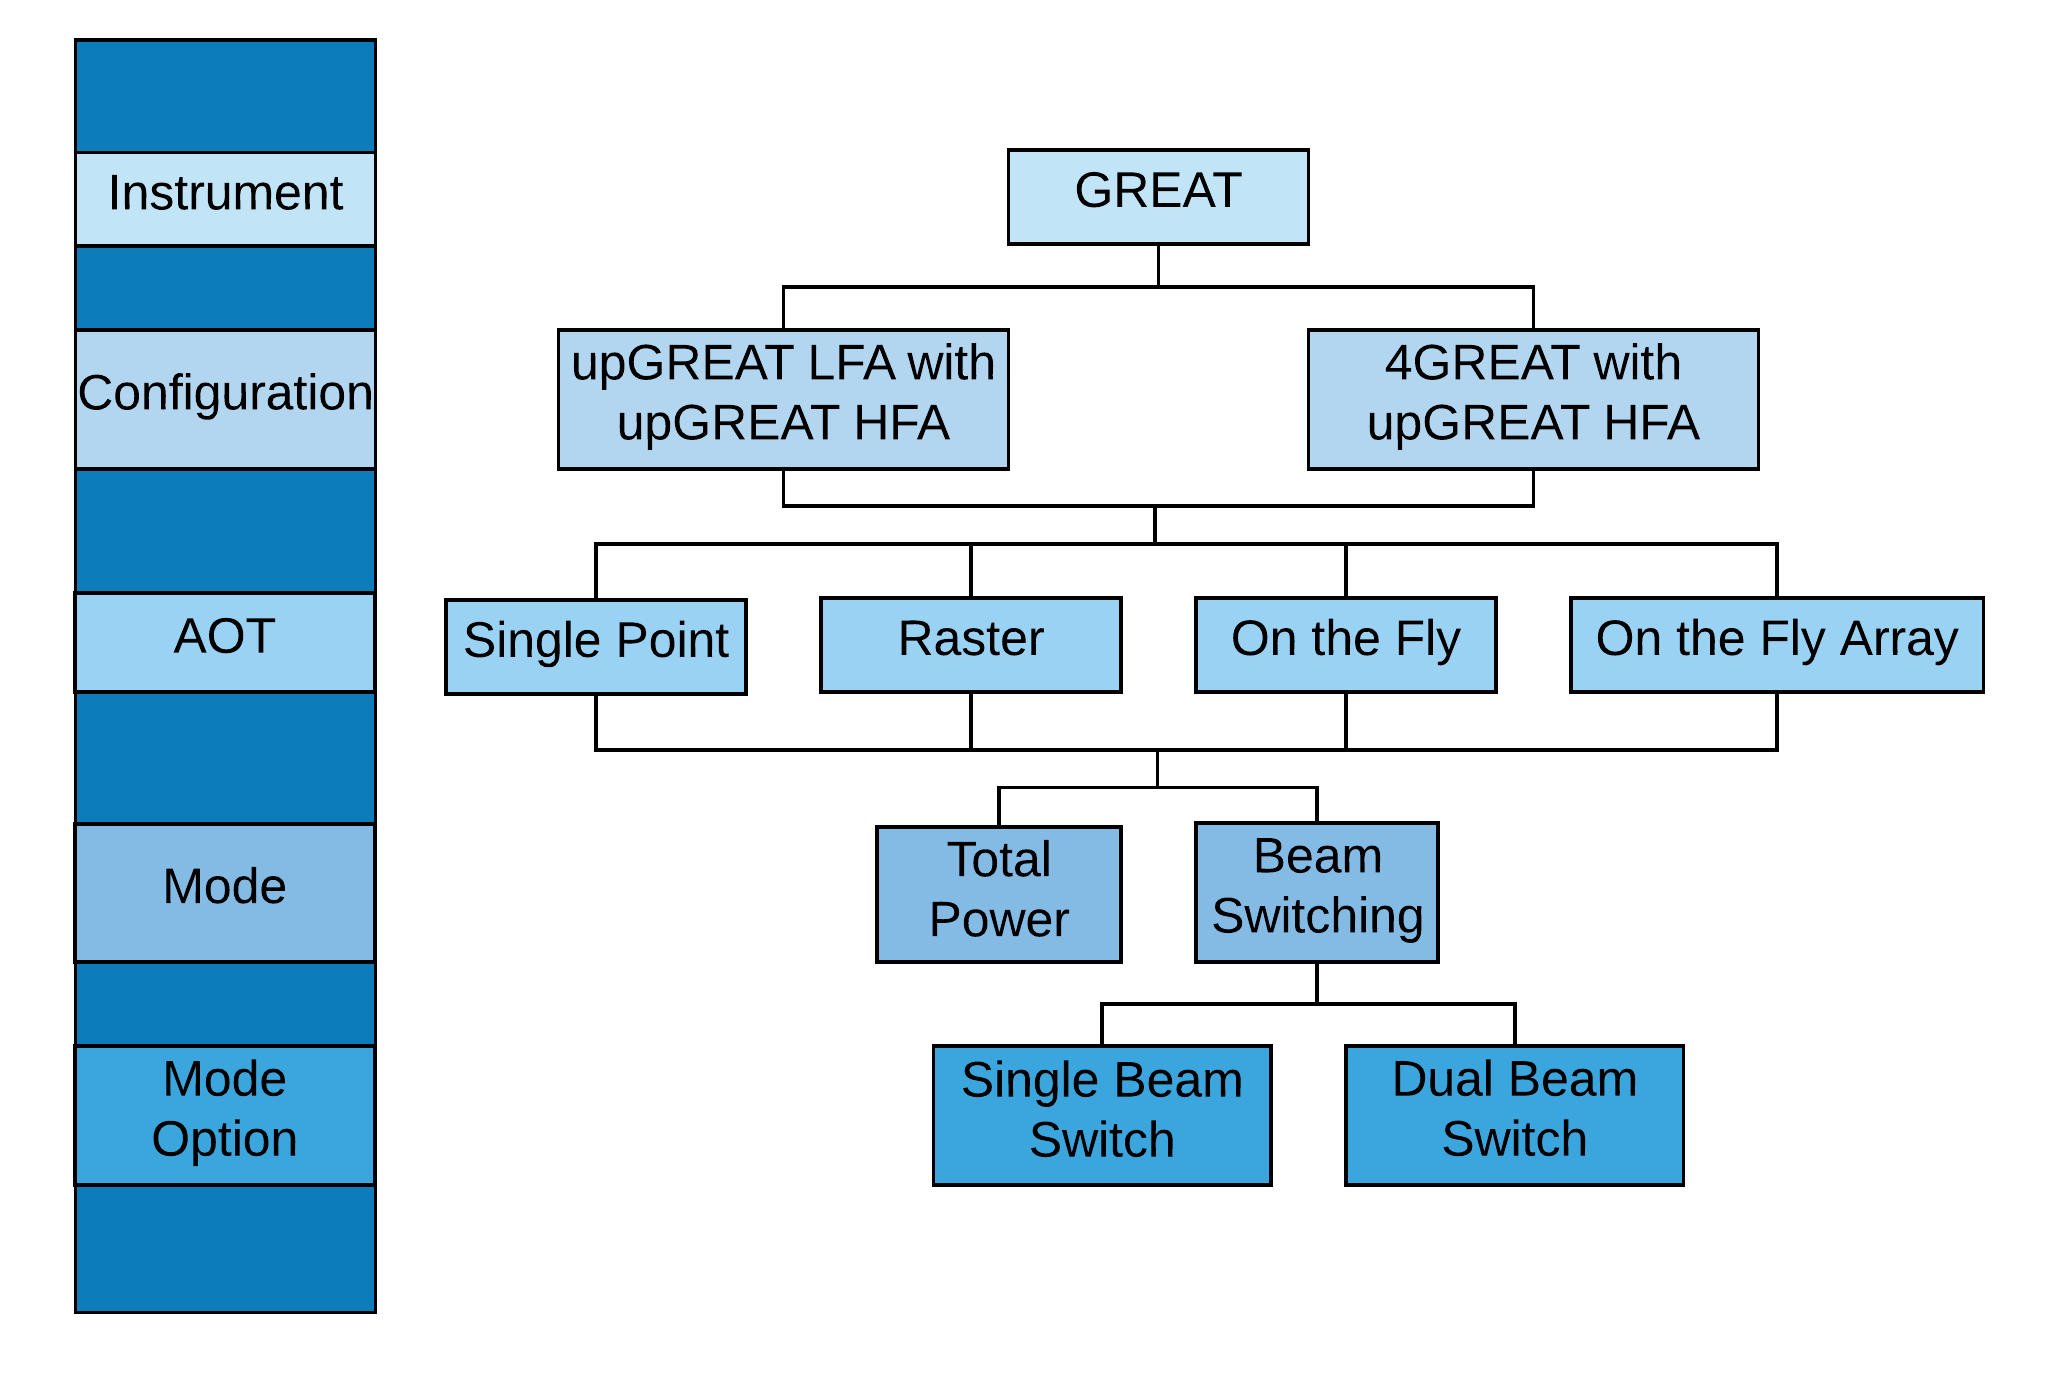 GREAT instrument configuration and mode flowchart diagram